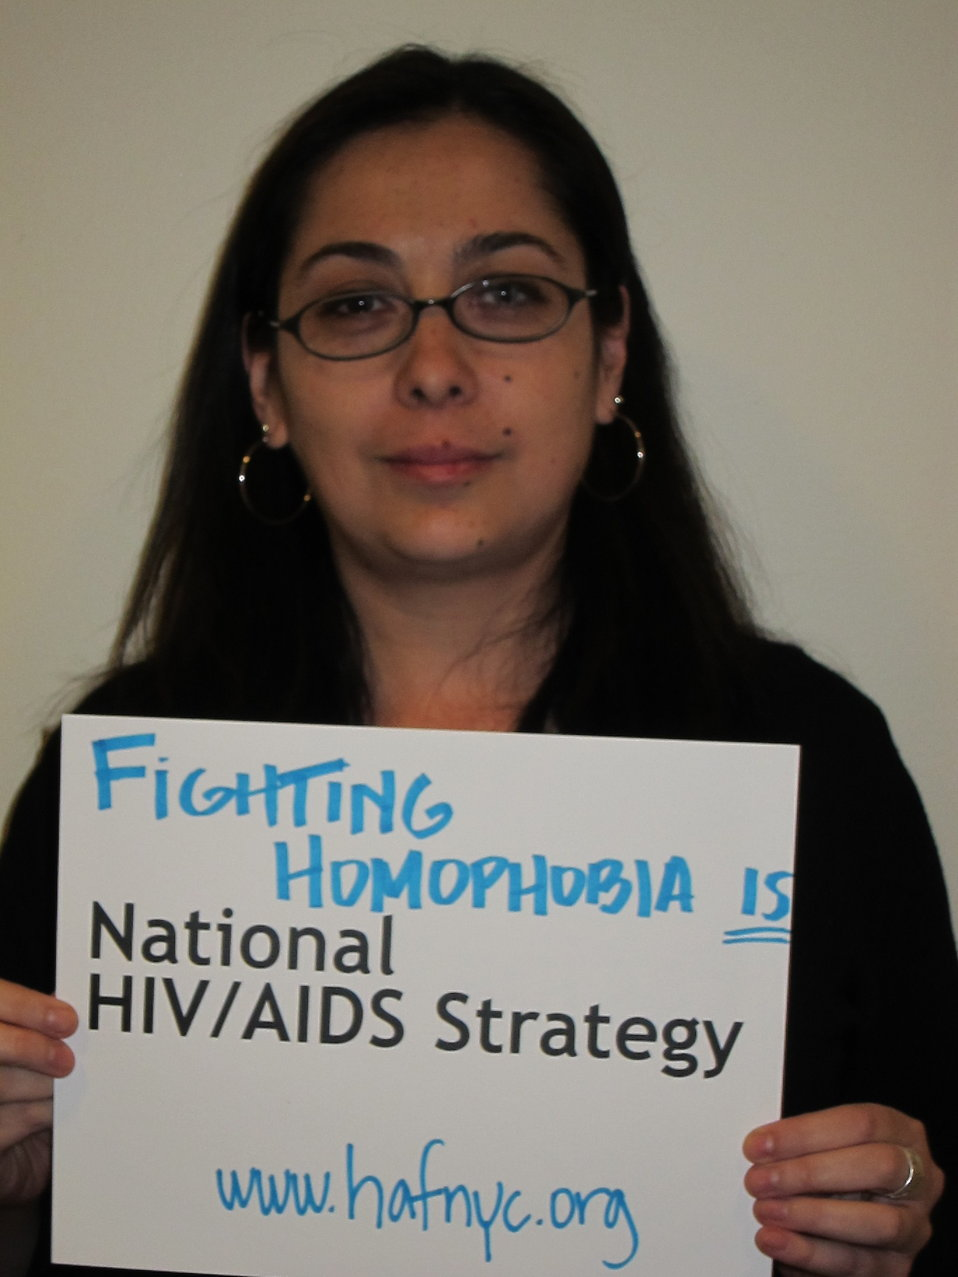 Fighting Homophobia is National HIV/AIDS Strategy www.hafnyc.org